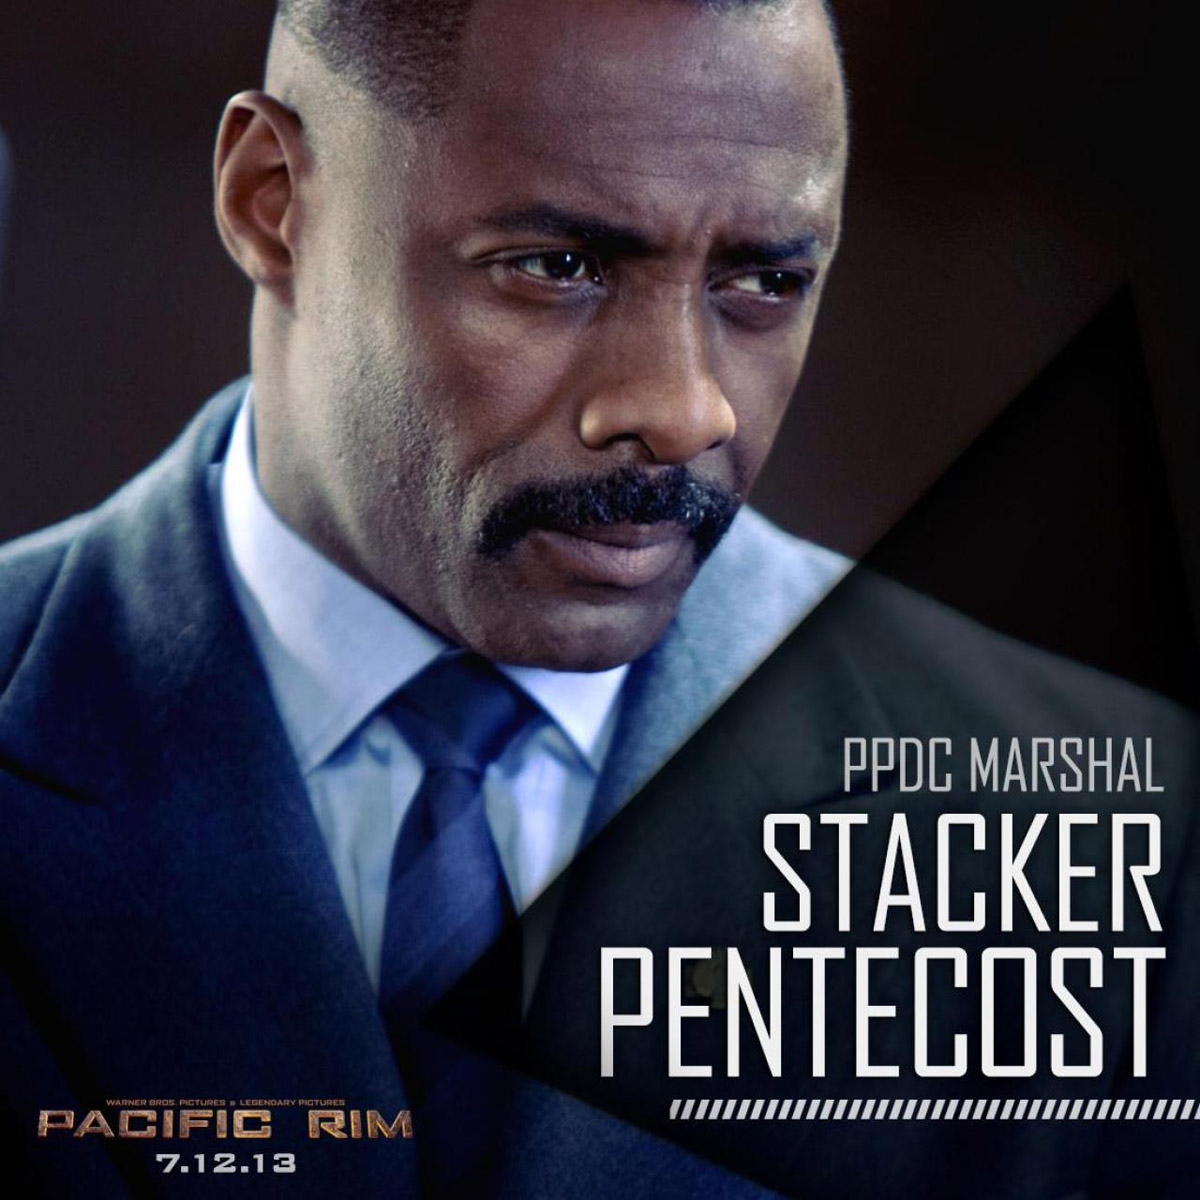 Pacific-Rim-stacker-pentecost